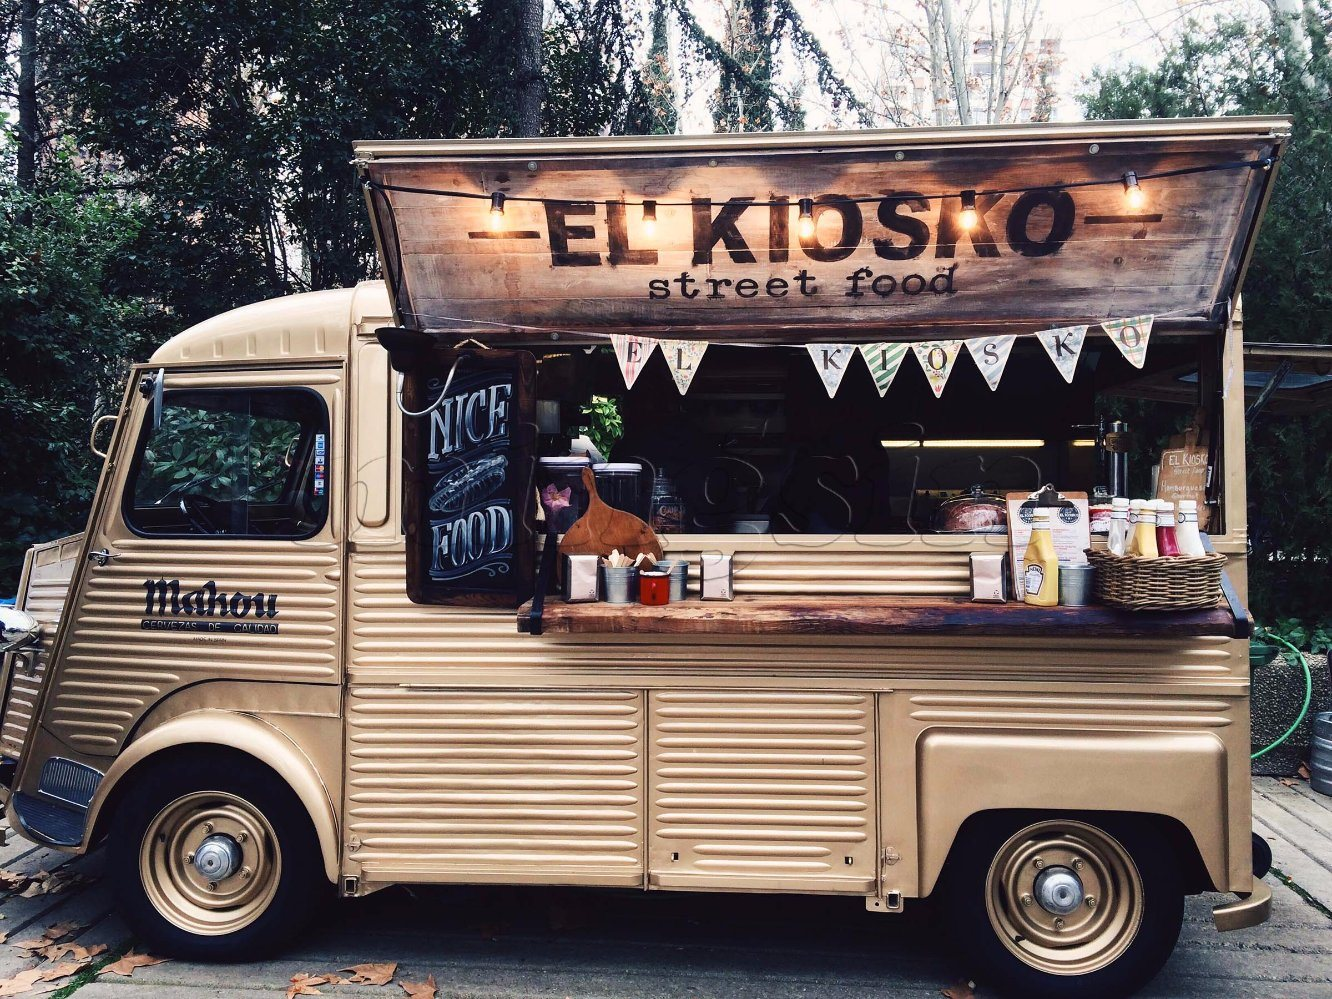 China Electric Ice Cream Truck Mobile Kitchen Food Truck For Sale China Food Truck Food Trailers